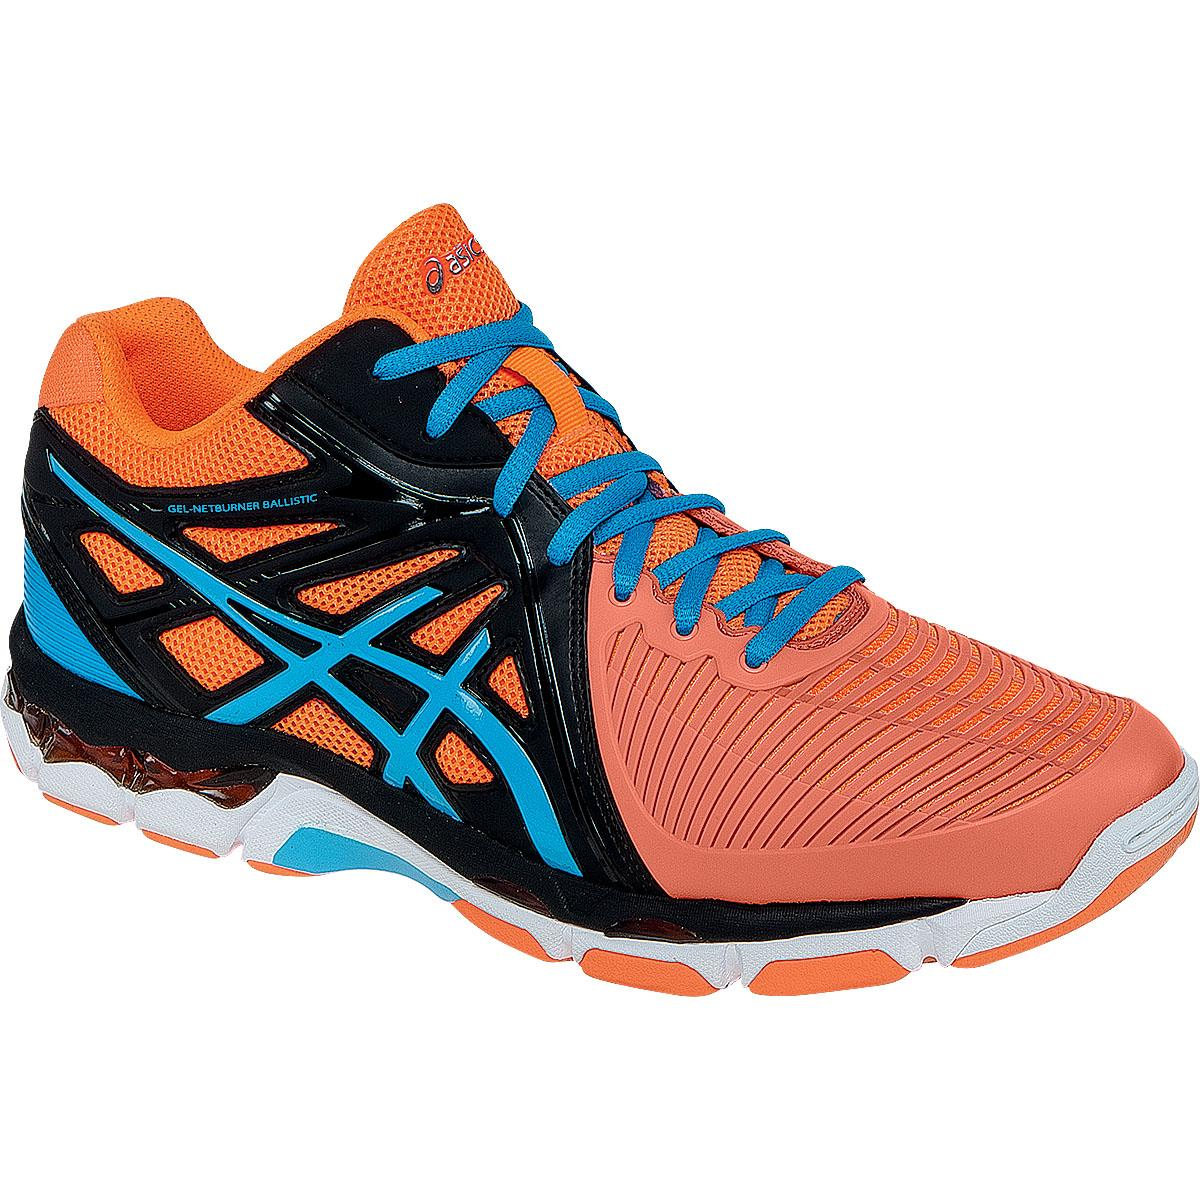 newest fc8c9 b0daf Mt Asics Gel Ballistic Mens Shoes Volleyball Netburner B508y 2016 4TTgxF